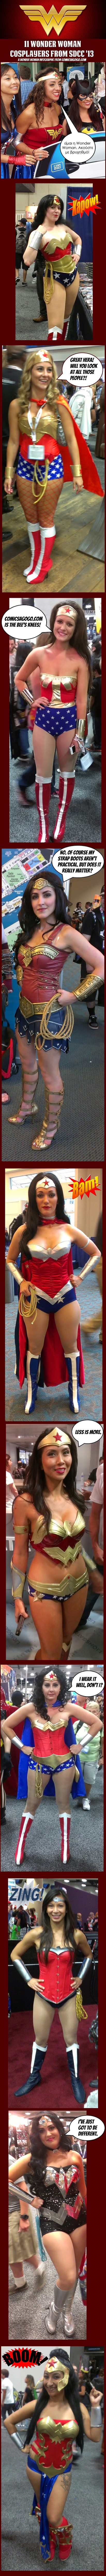 Wonder Woman Cosplayers at the San Diego Comic-Con 2013